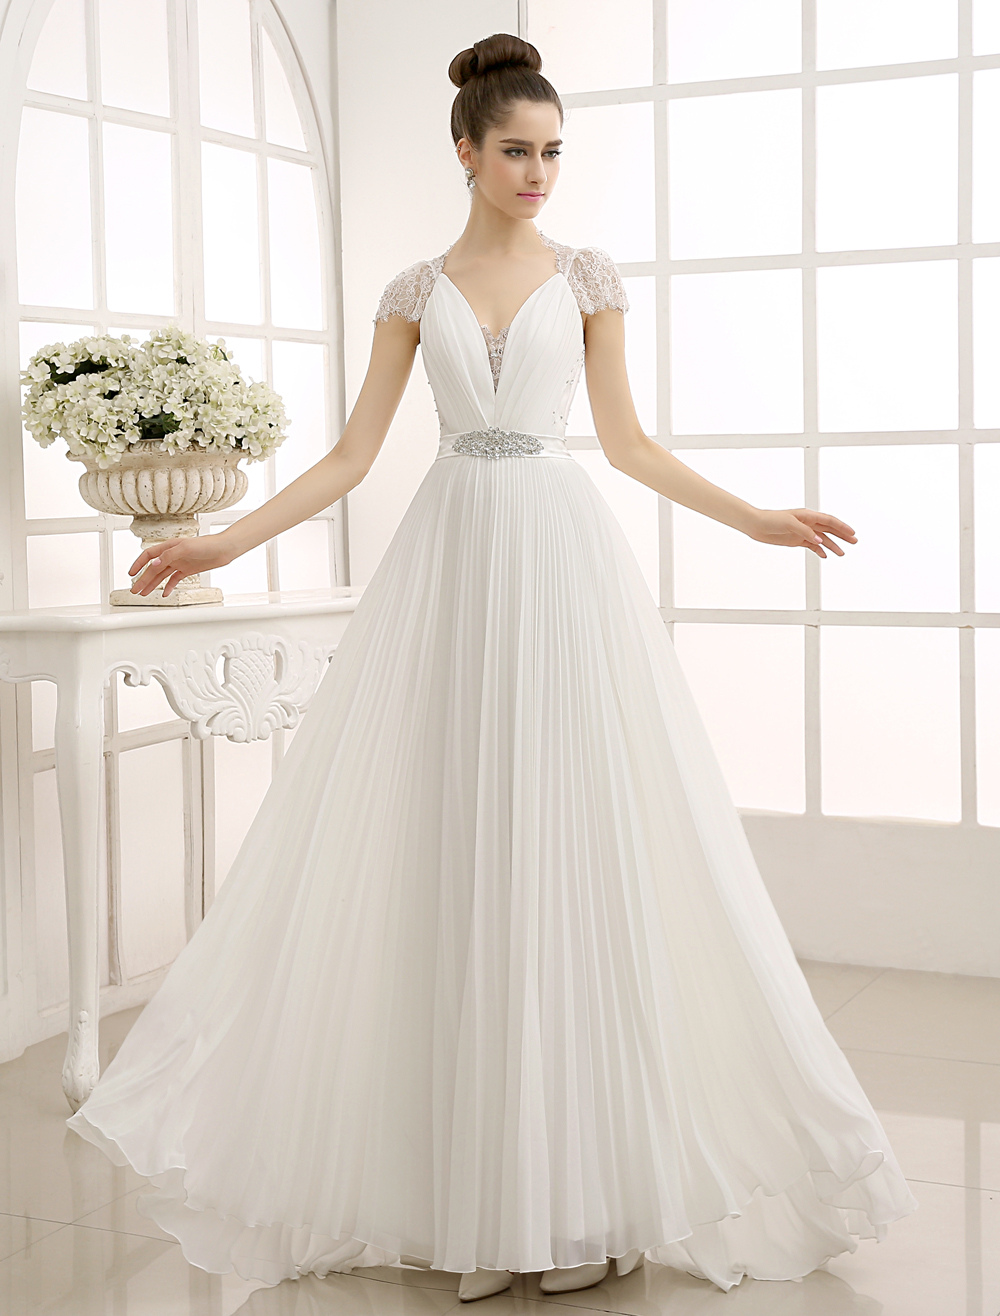 Ivory Strapless Beaded Wedding Dress with Lace